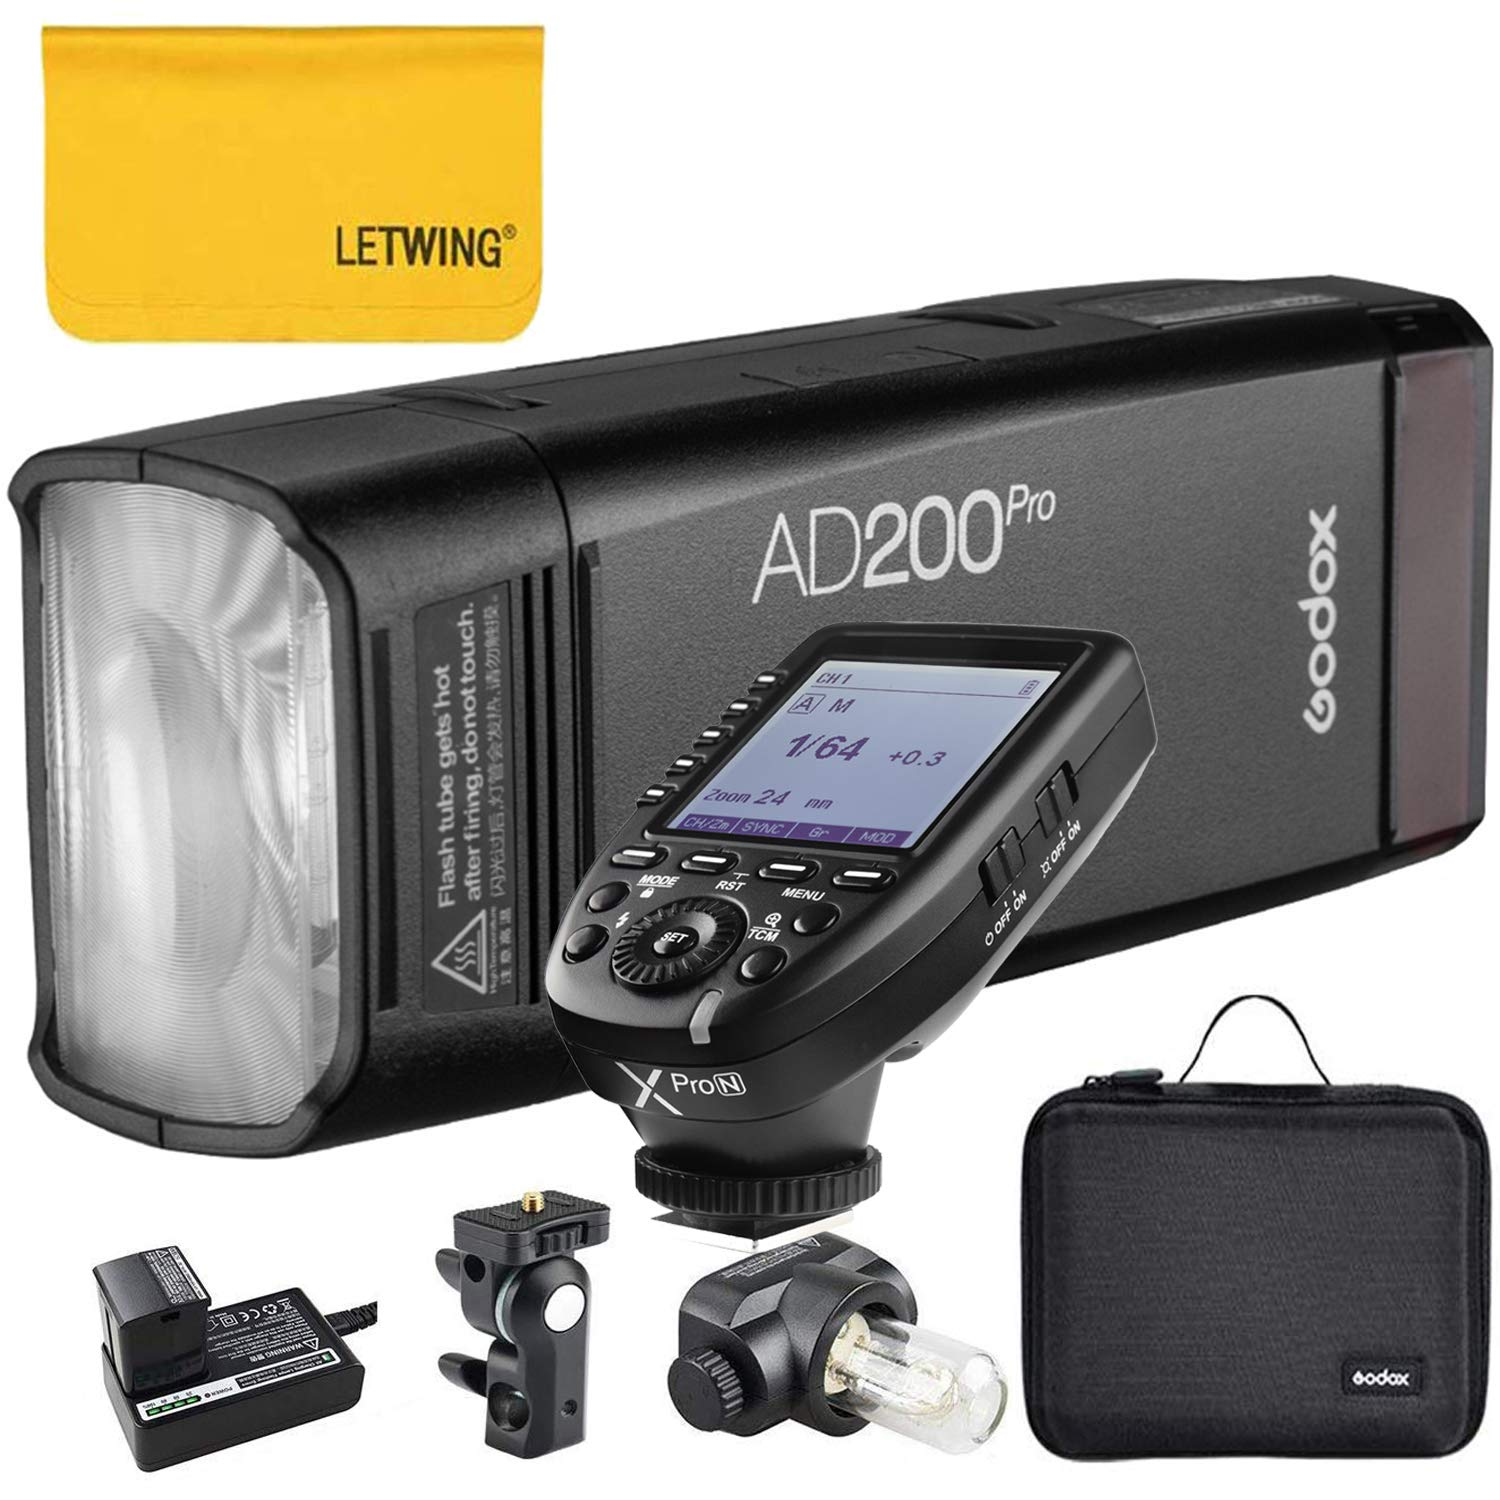 Godox AD200Pro TTL 2.4G HSS 1/8000s Pocket Flash Light Double Head 200Ws with 14.4V/2900mAh Lithium Battery and Godox XPro-N Flash Trigger Compatible for Nikon Camera by Godox